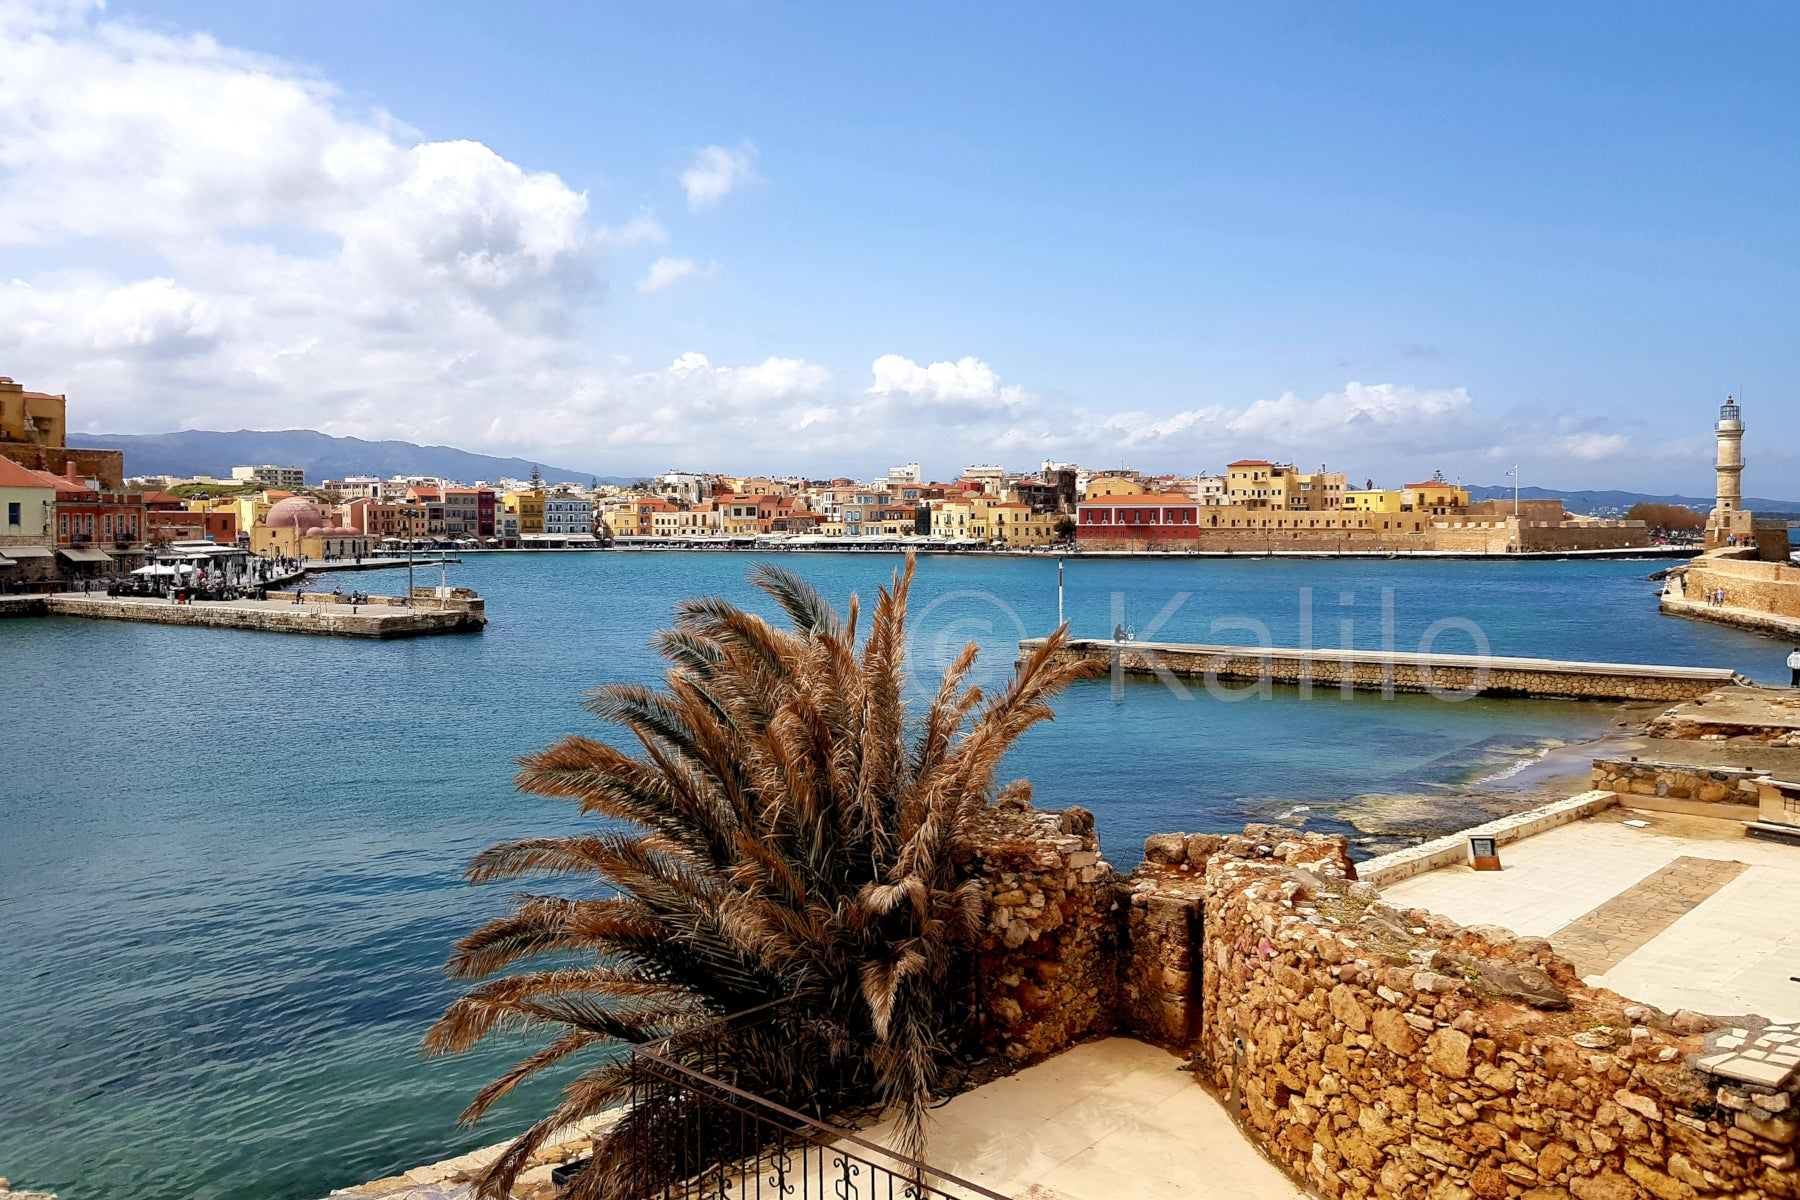 Venetian harbour of Chania - Crete, Greece